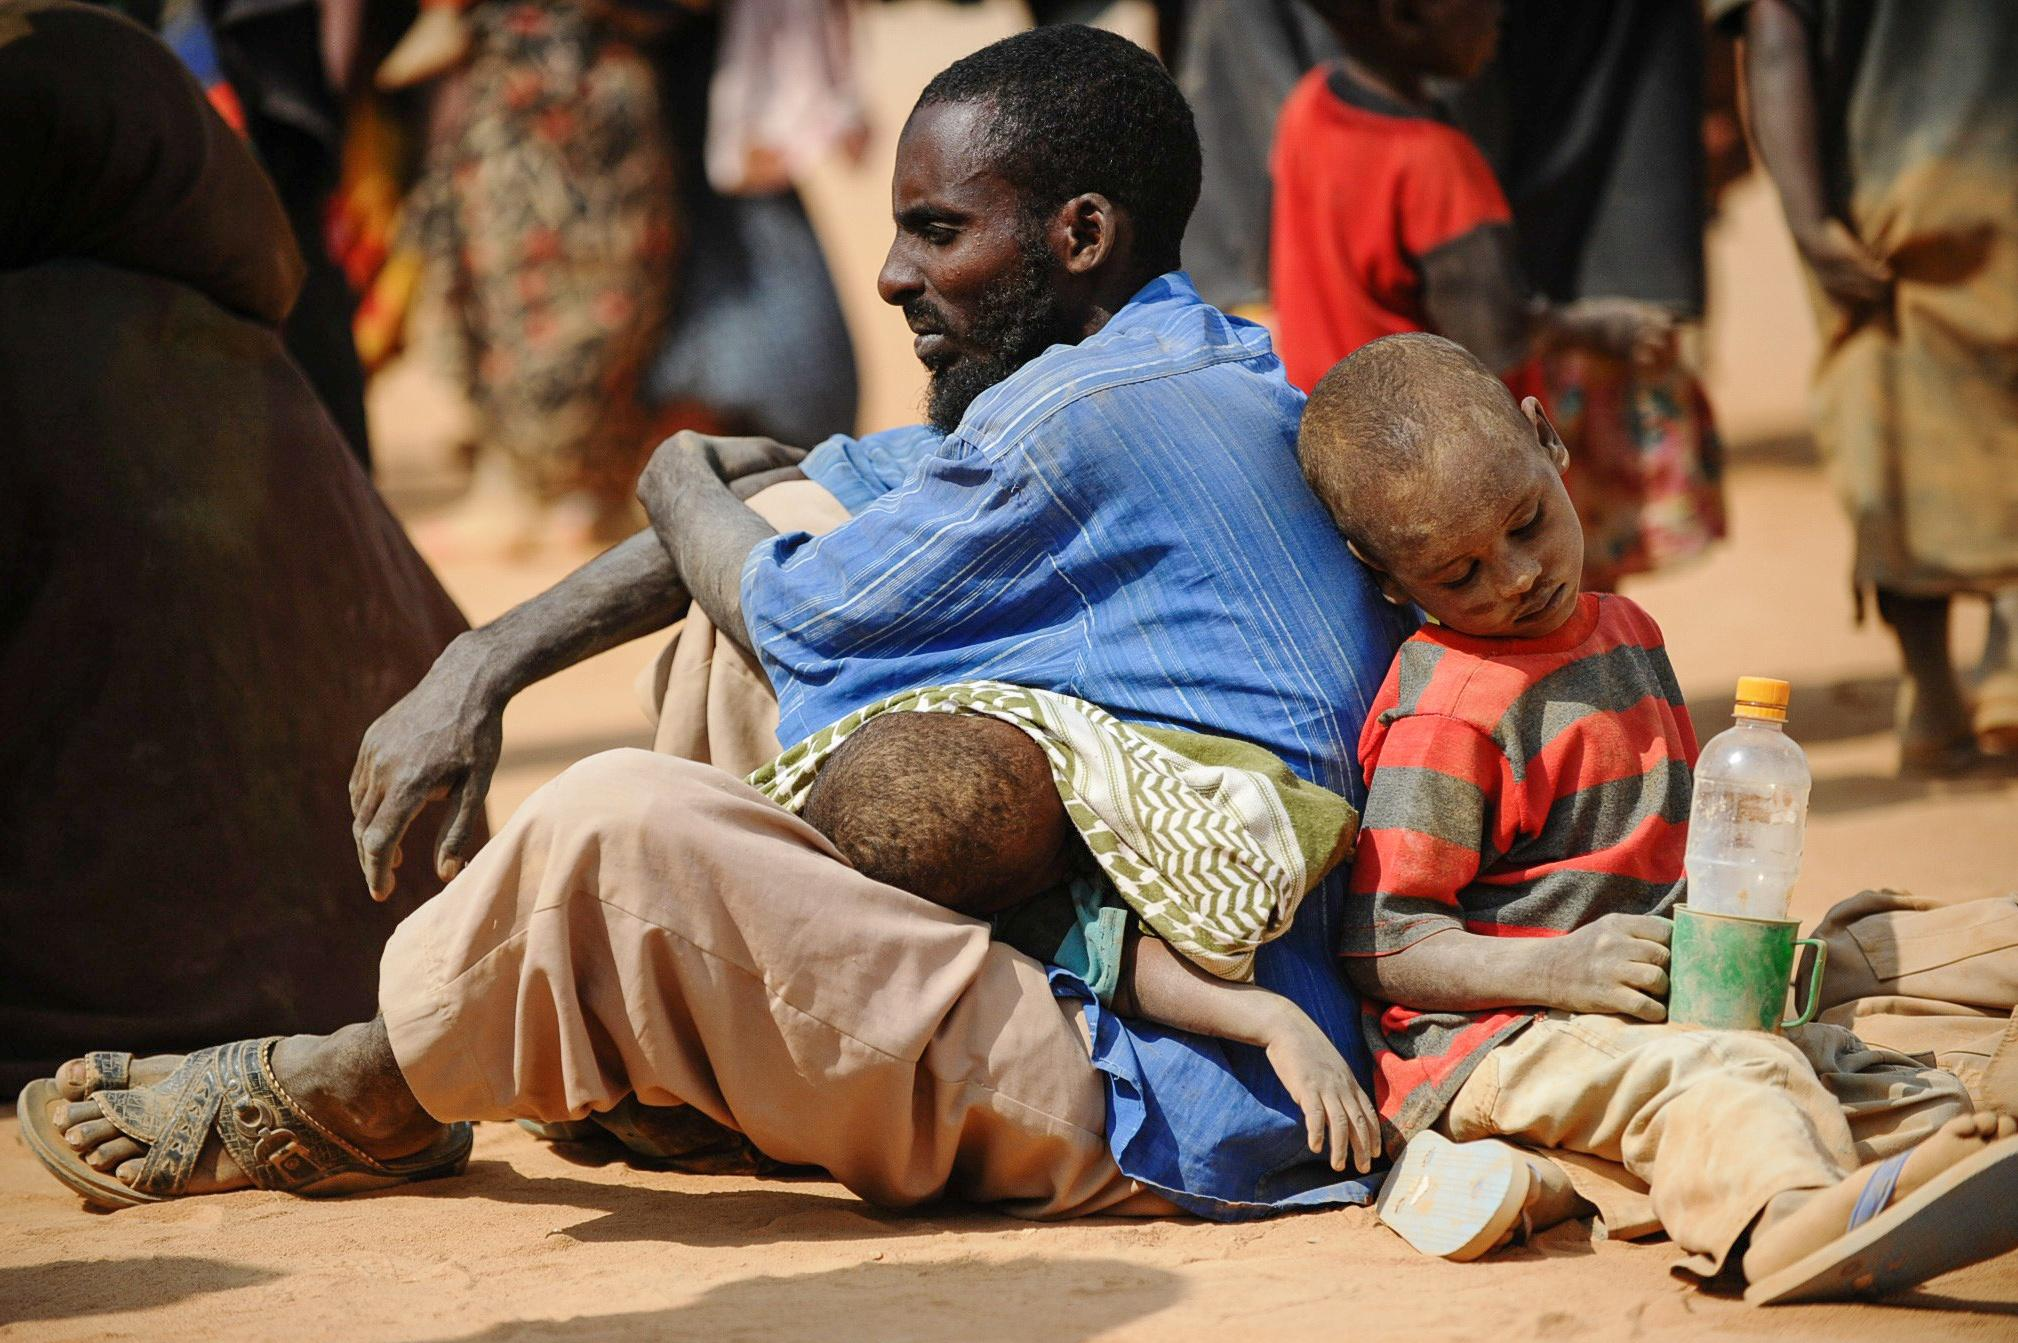 A refugee family in Mozambique